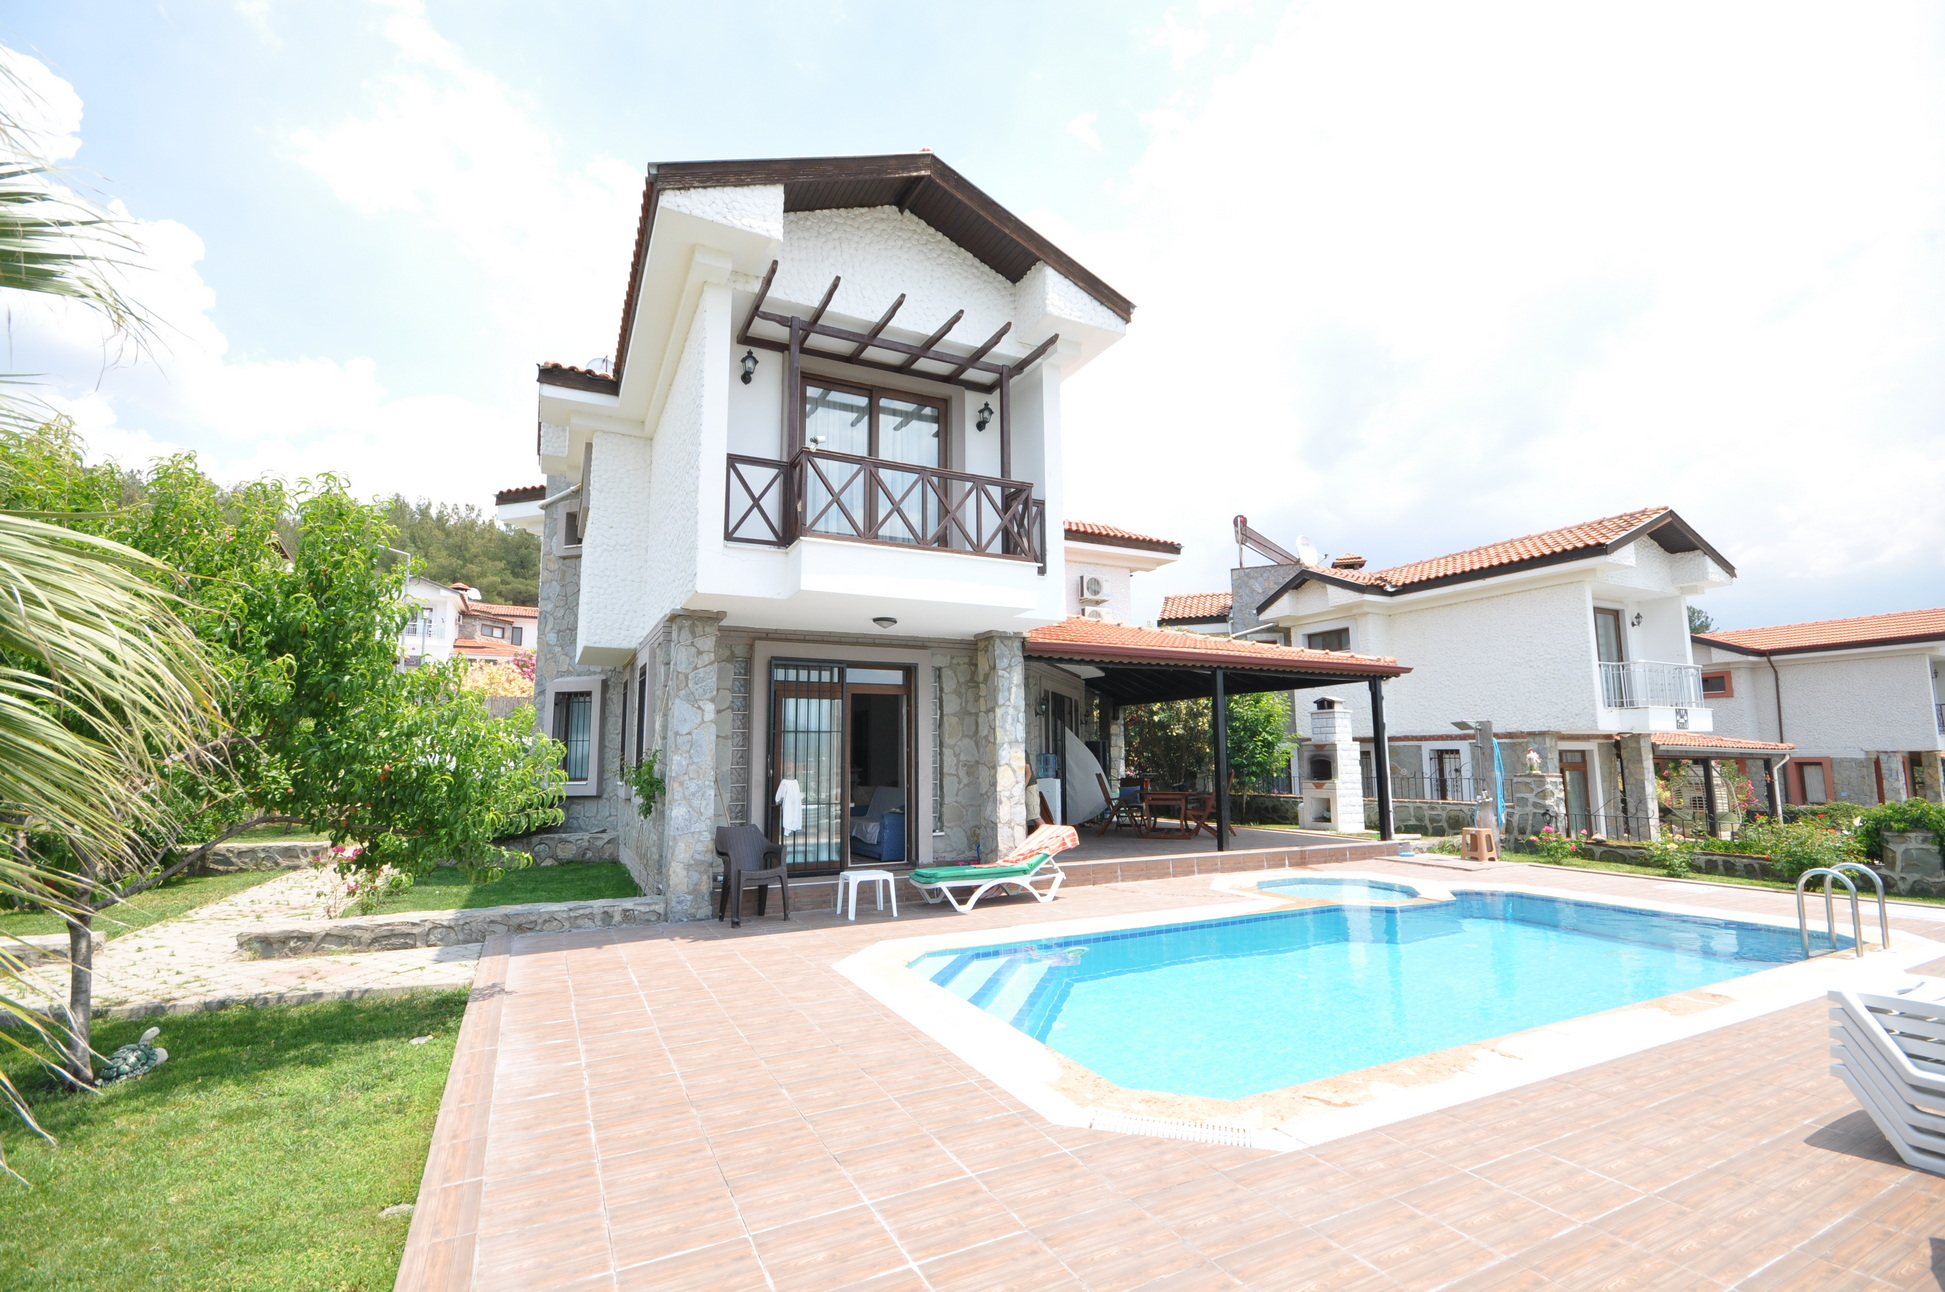 Stunning Traditional Stone 4 Bed Detached Villa with Large Private Garden & Pool